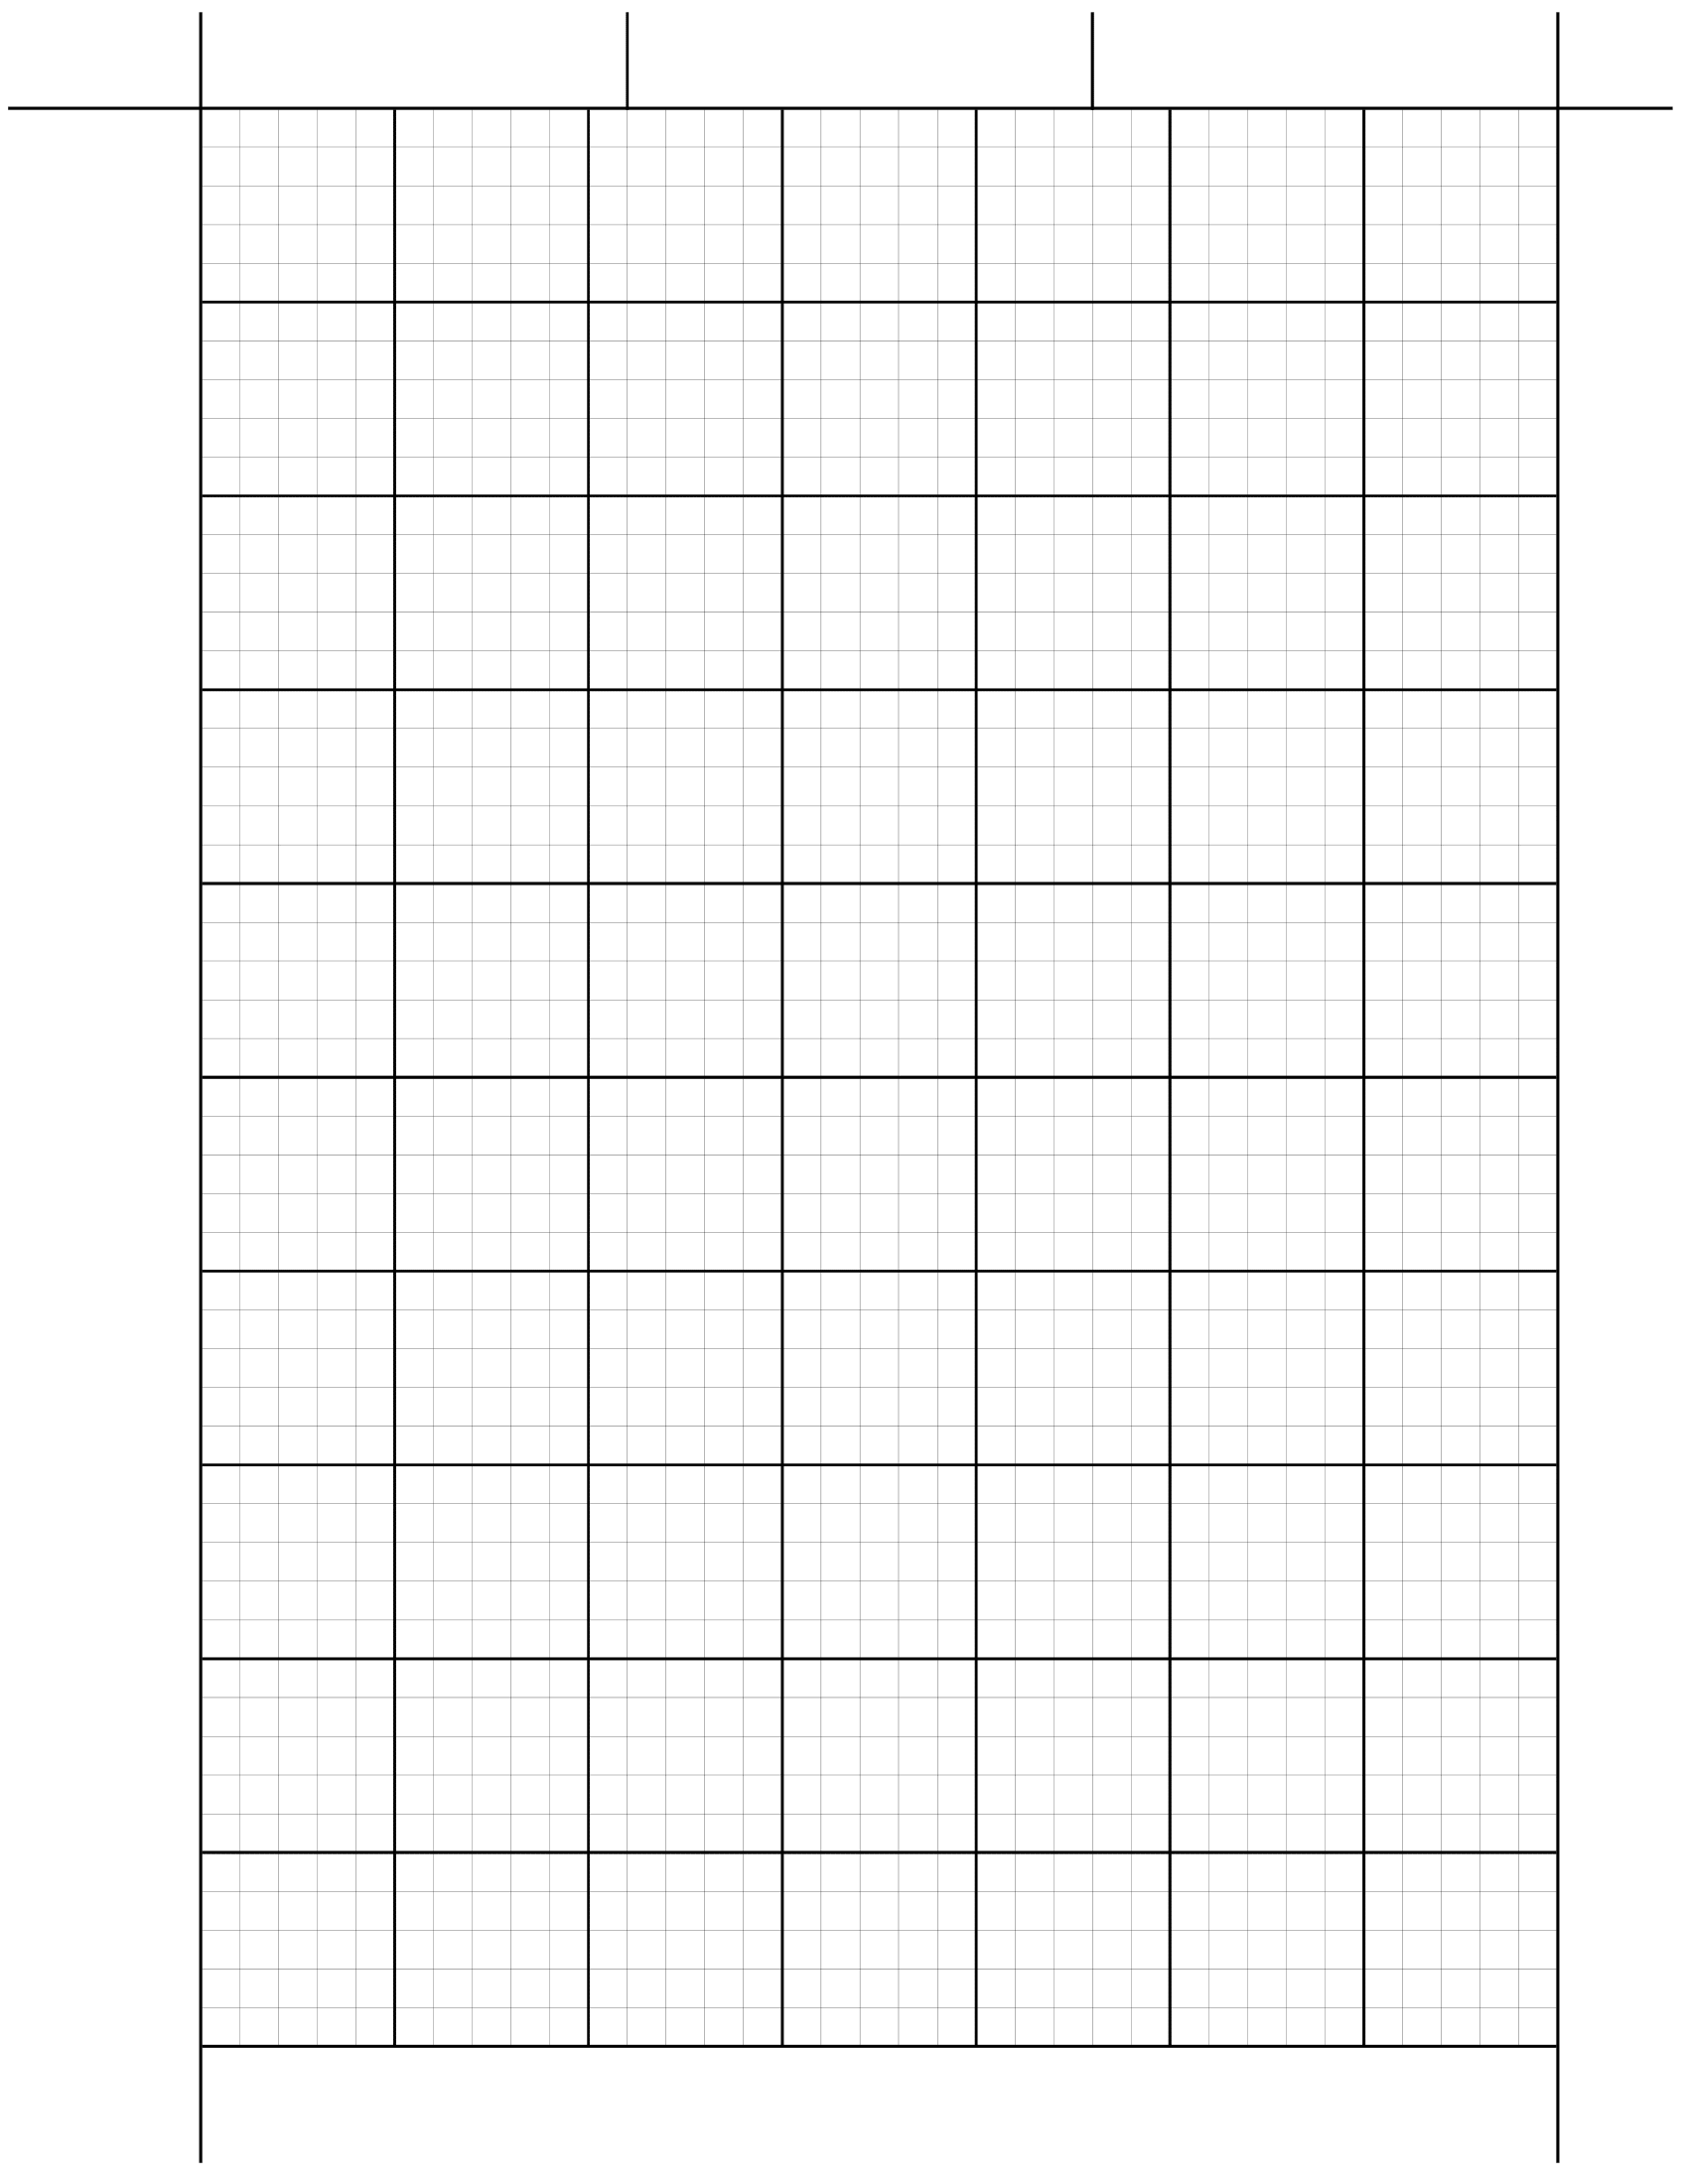 This Is A Template For Printing Engineering Computation Pad Paper On Regular Printer